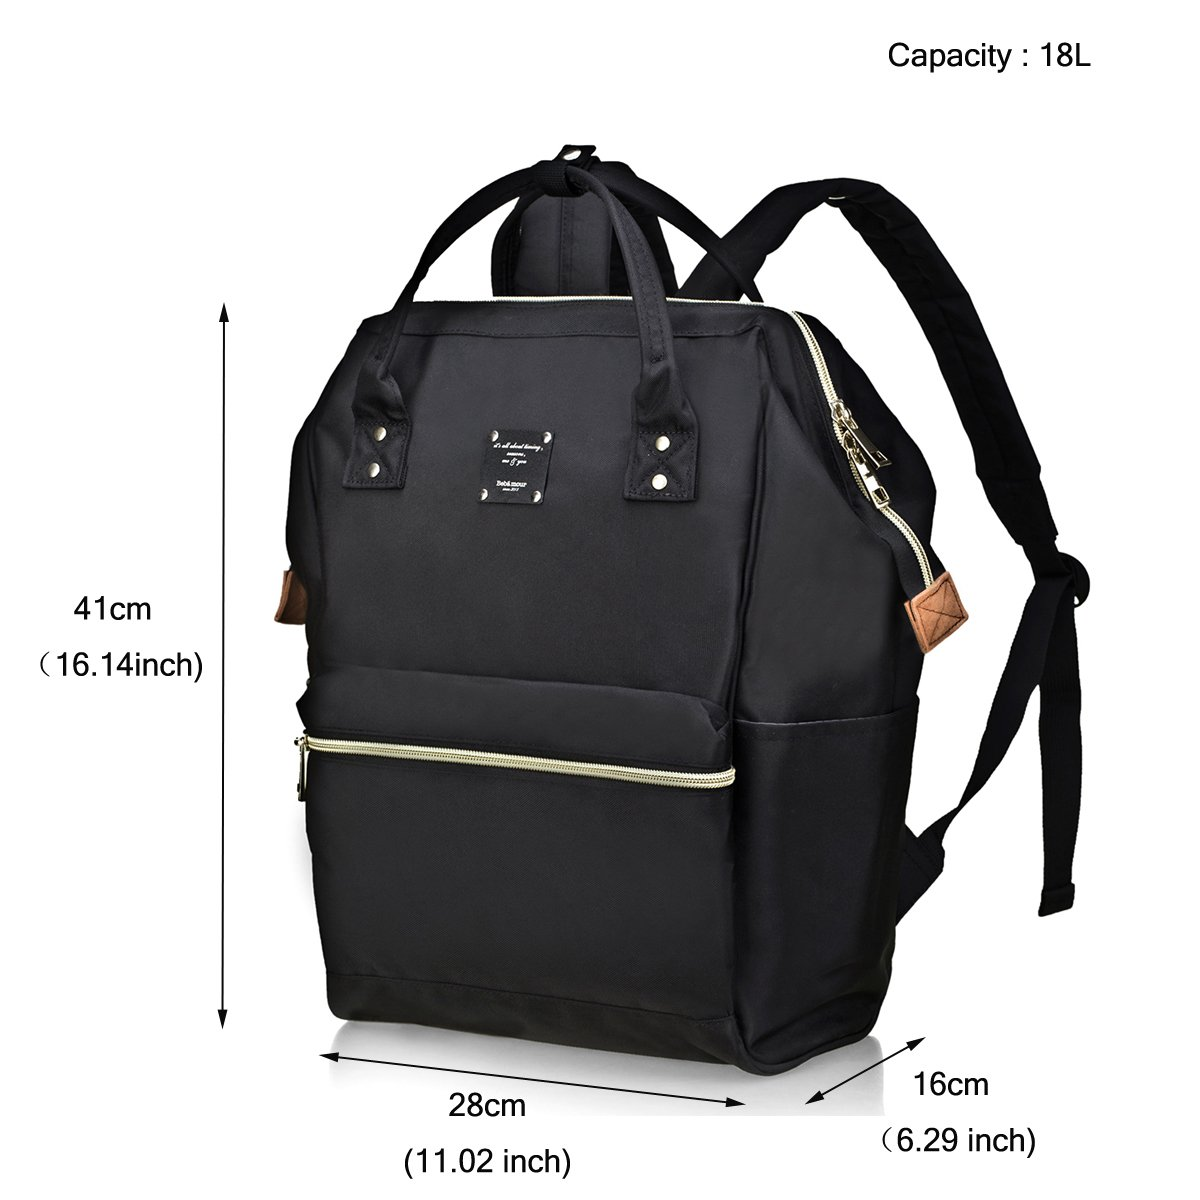 BebamourCasual College Backpack Lightweight Travel Wide Open Backpack for Women&Men,Green by Bebamour (Image #3)